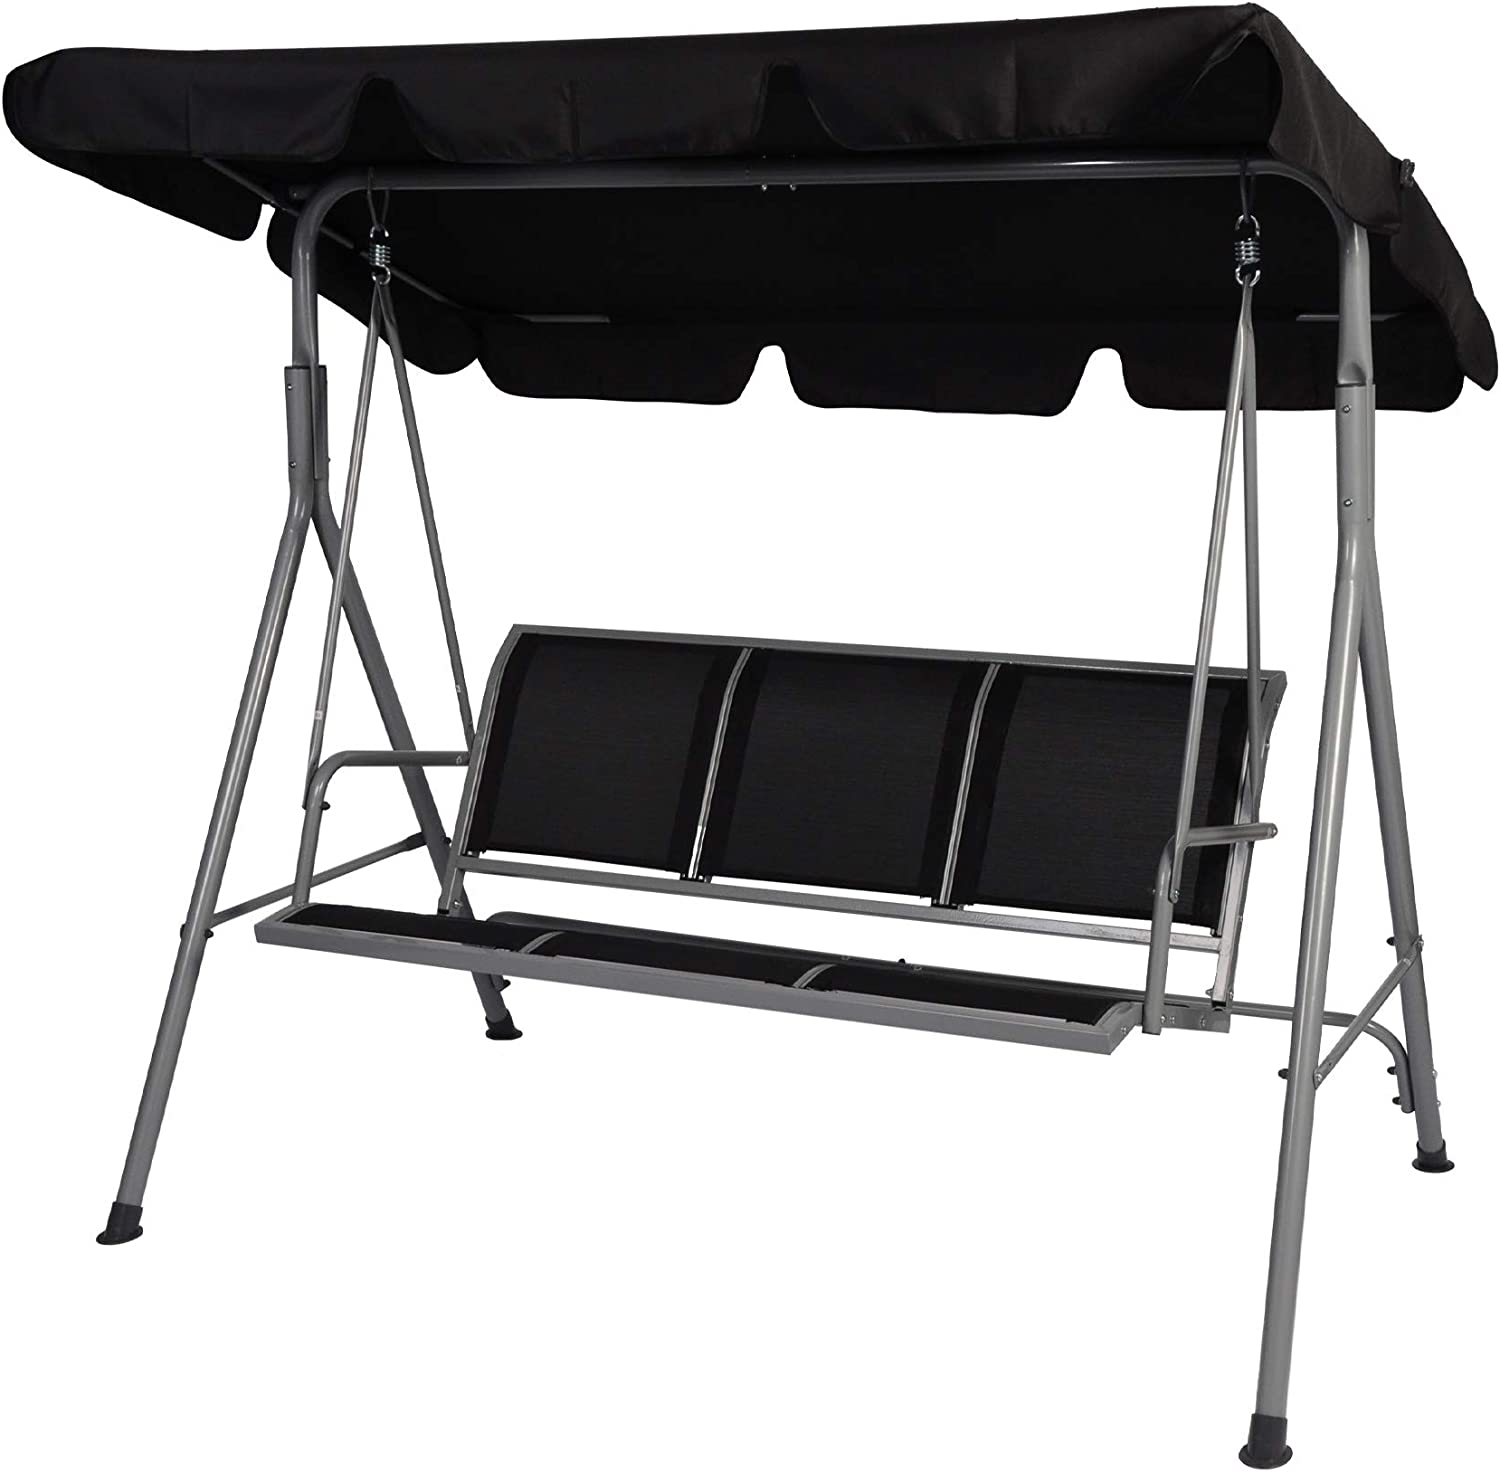 """willstar Outdoor Swing Cover 3 Triple Seater Hammock Patio Swing Chair Cover Durable and Water Resistant All Weather Protection 87 Lx50 Wx67/""""H, Grey"""